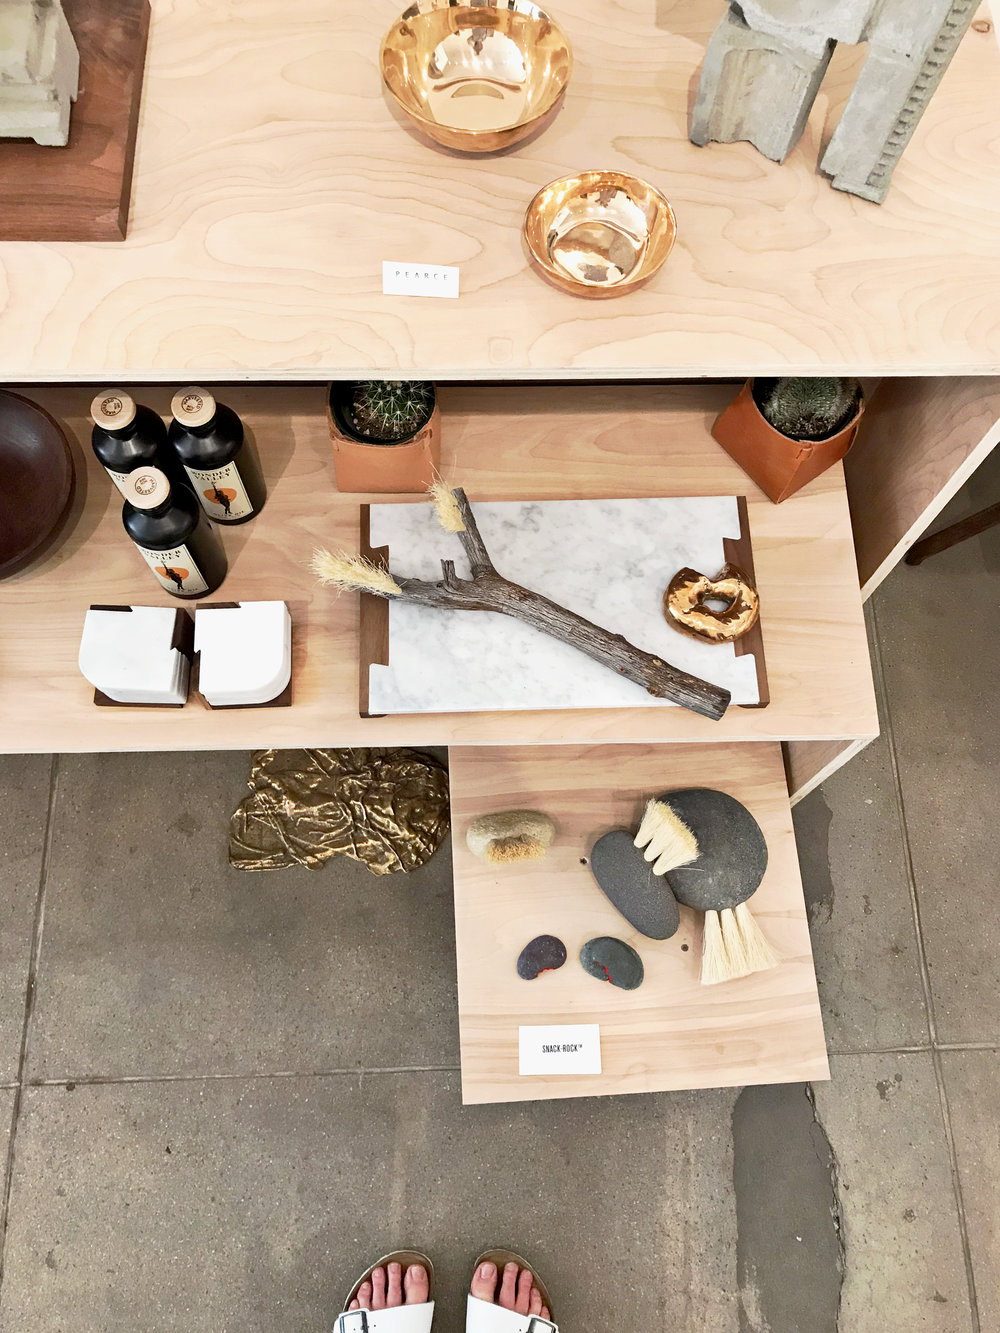 cool stuff on display at gallery-shop BKB Design on Palm Canyon Drive.